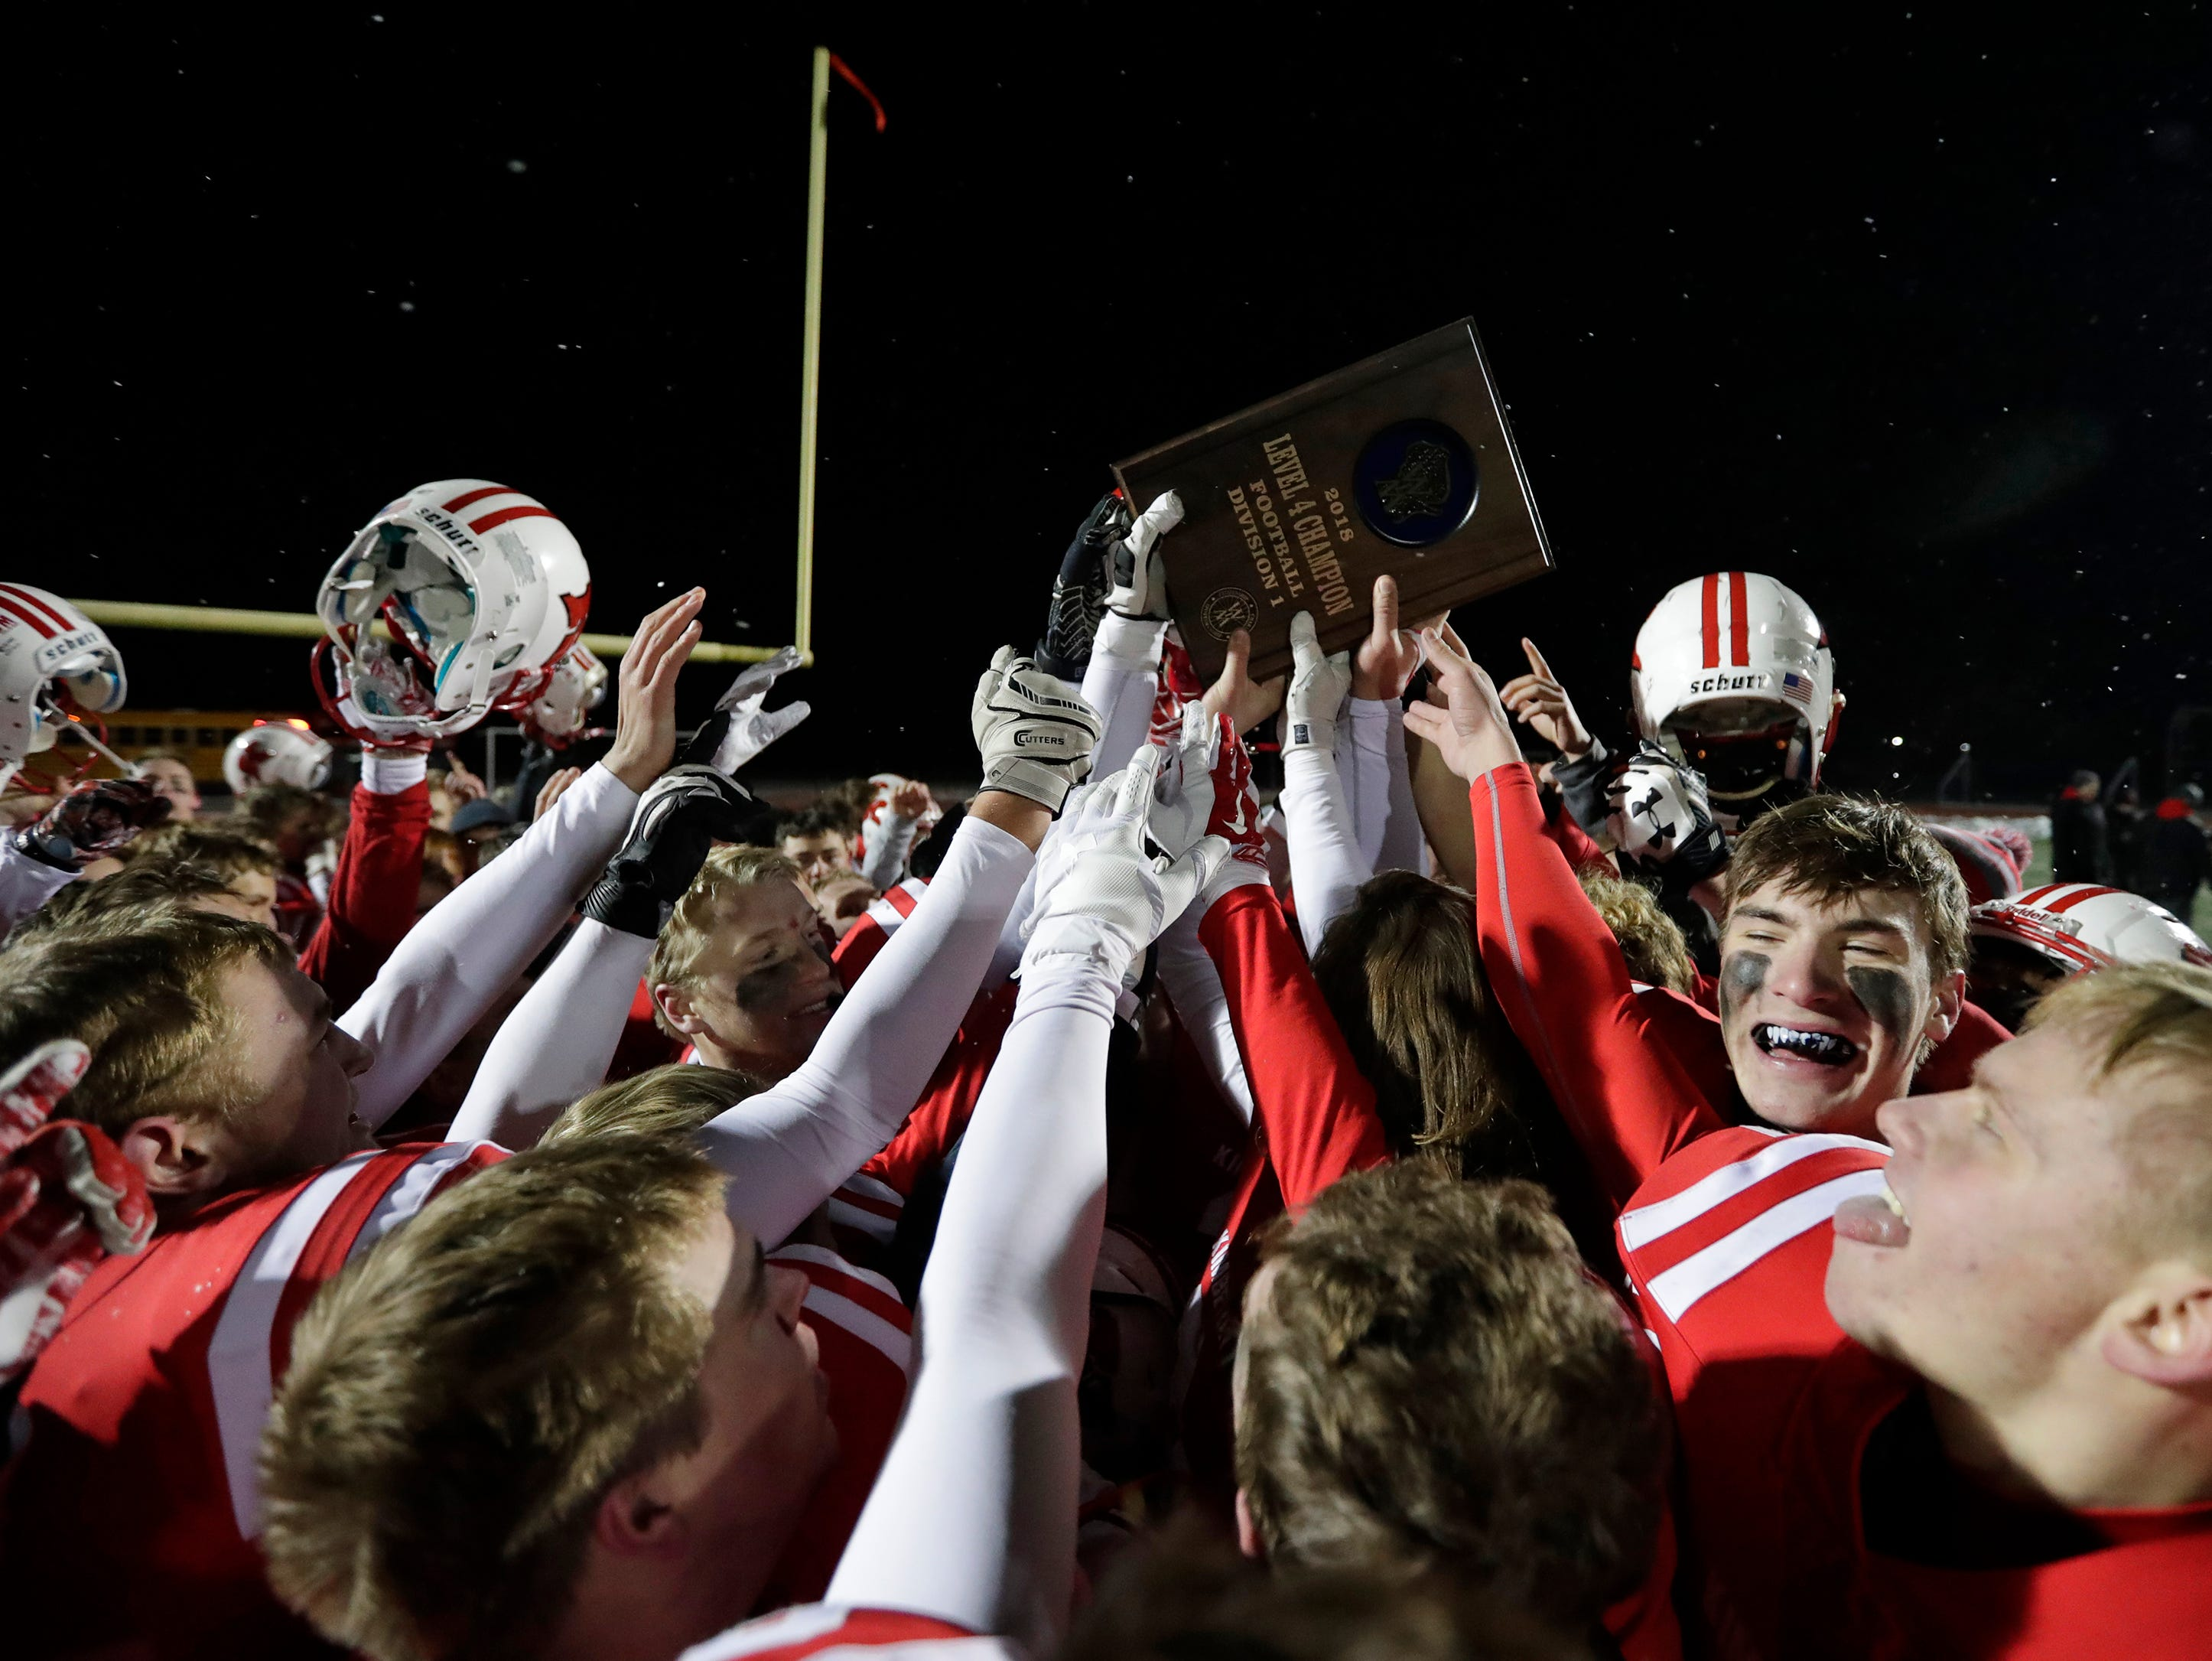 Kimberly High School's players celebrate their 22-21 overtime victory against Fond du Lac High School during their WIAA Division 1 state semifinal football game Friday, November 9, 2018, at Titan Stadium in Oshkosh, Wis. 